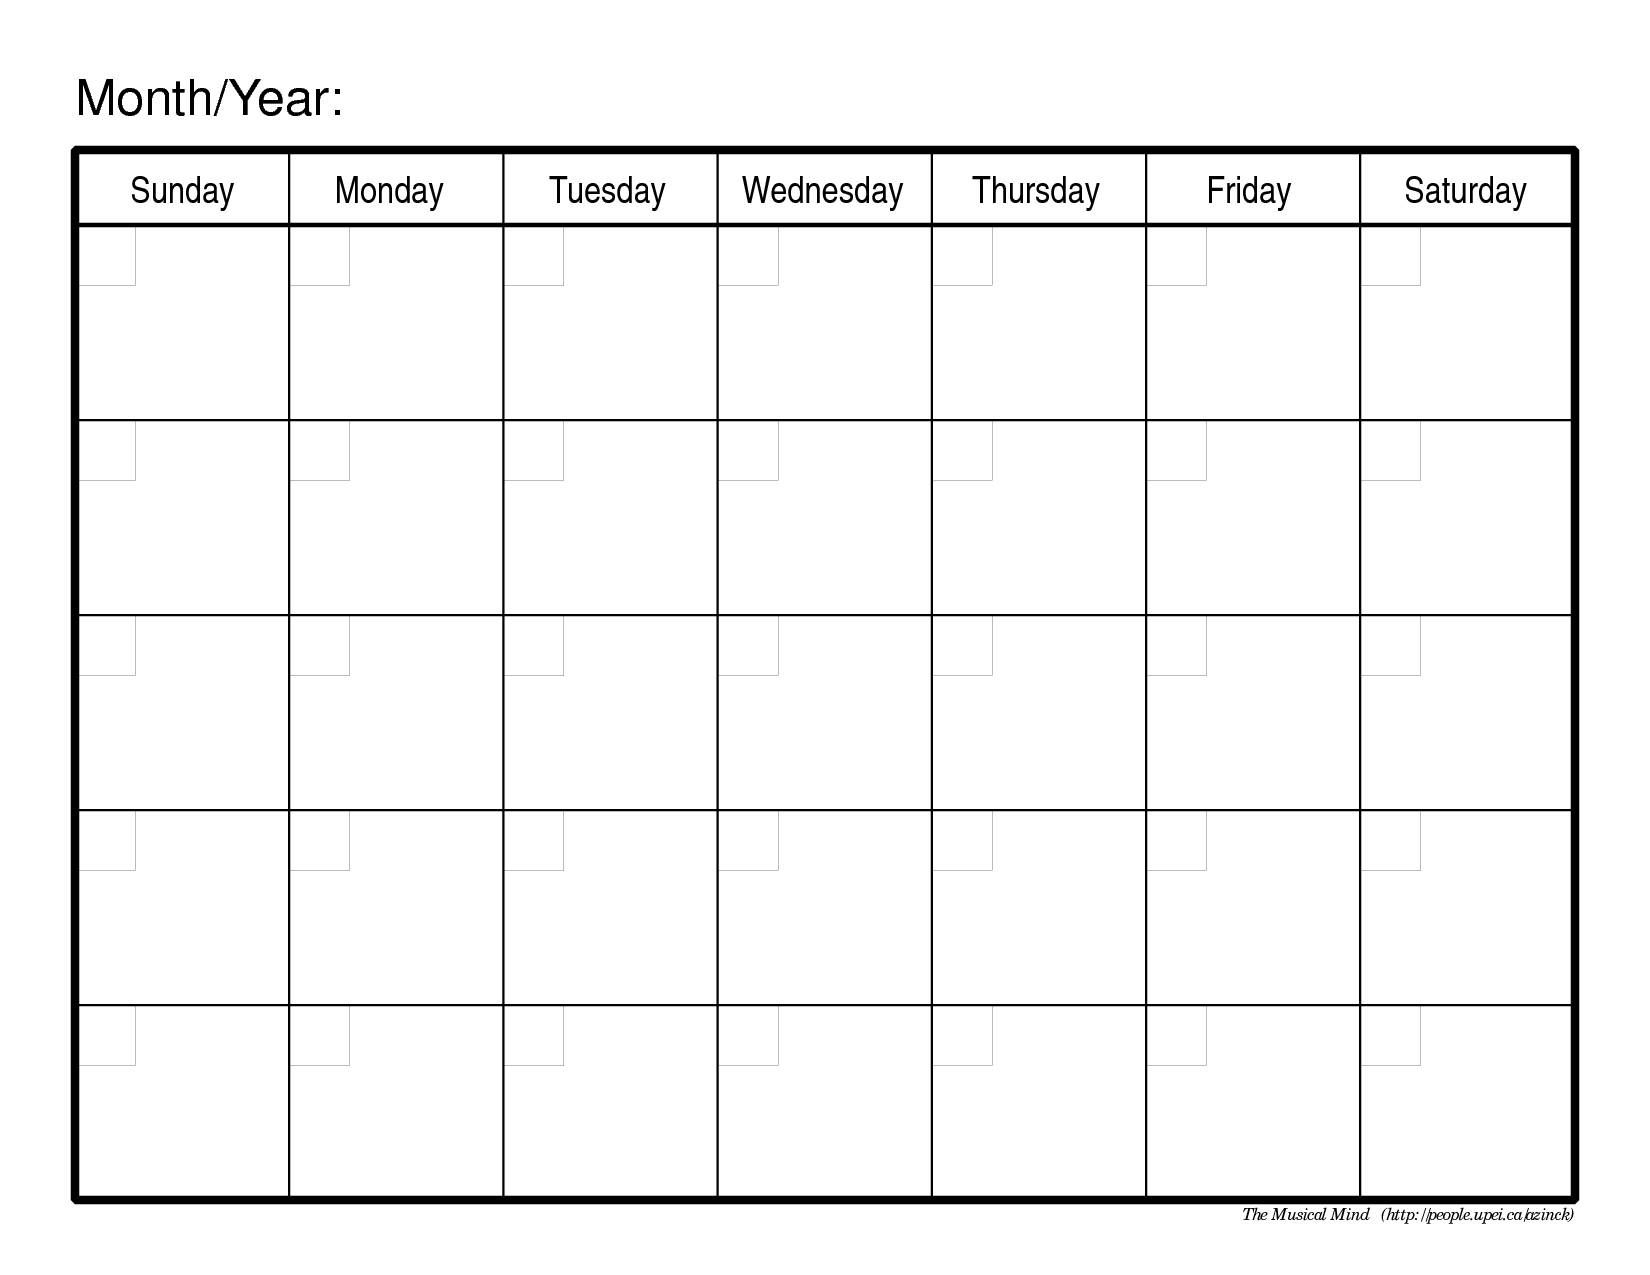 Month Calendar Template Word  Bolan.horizonconsulting.co within Word Calendar Creator